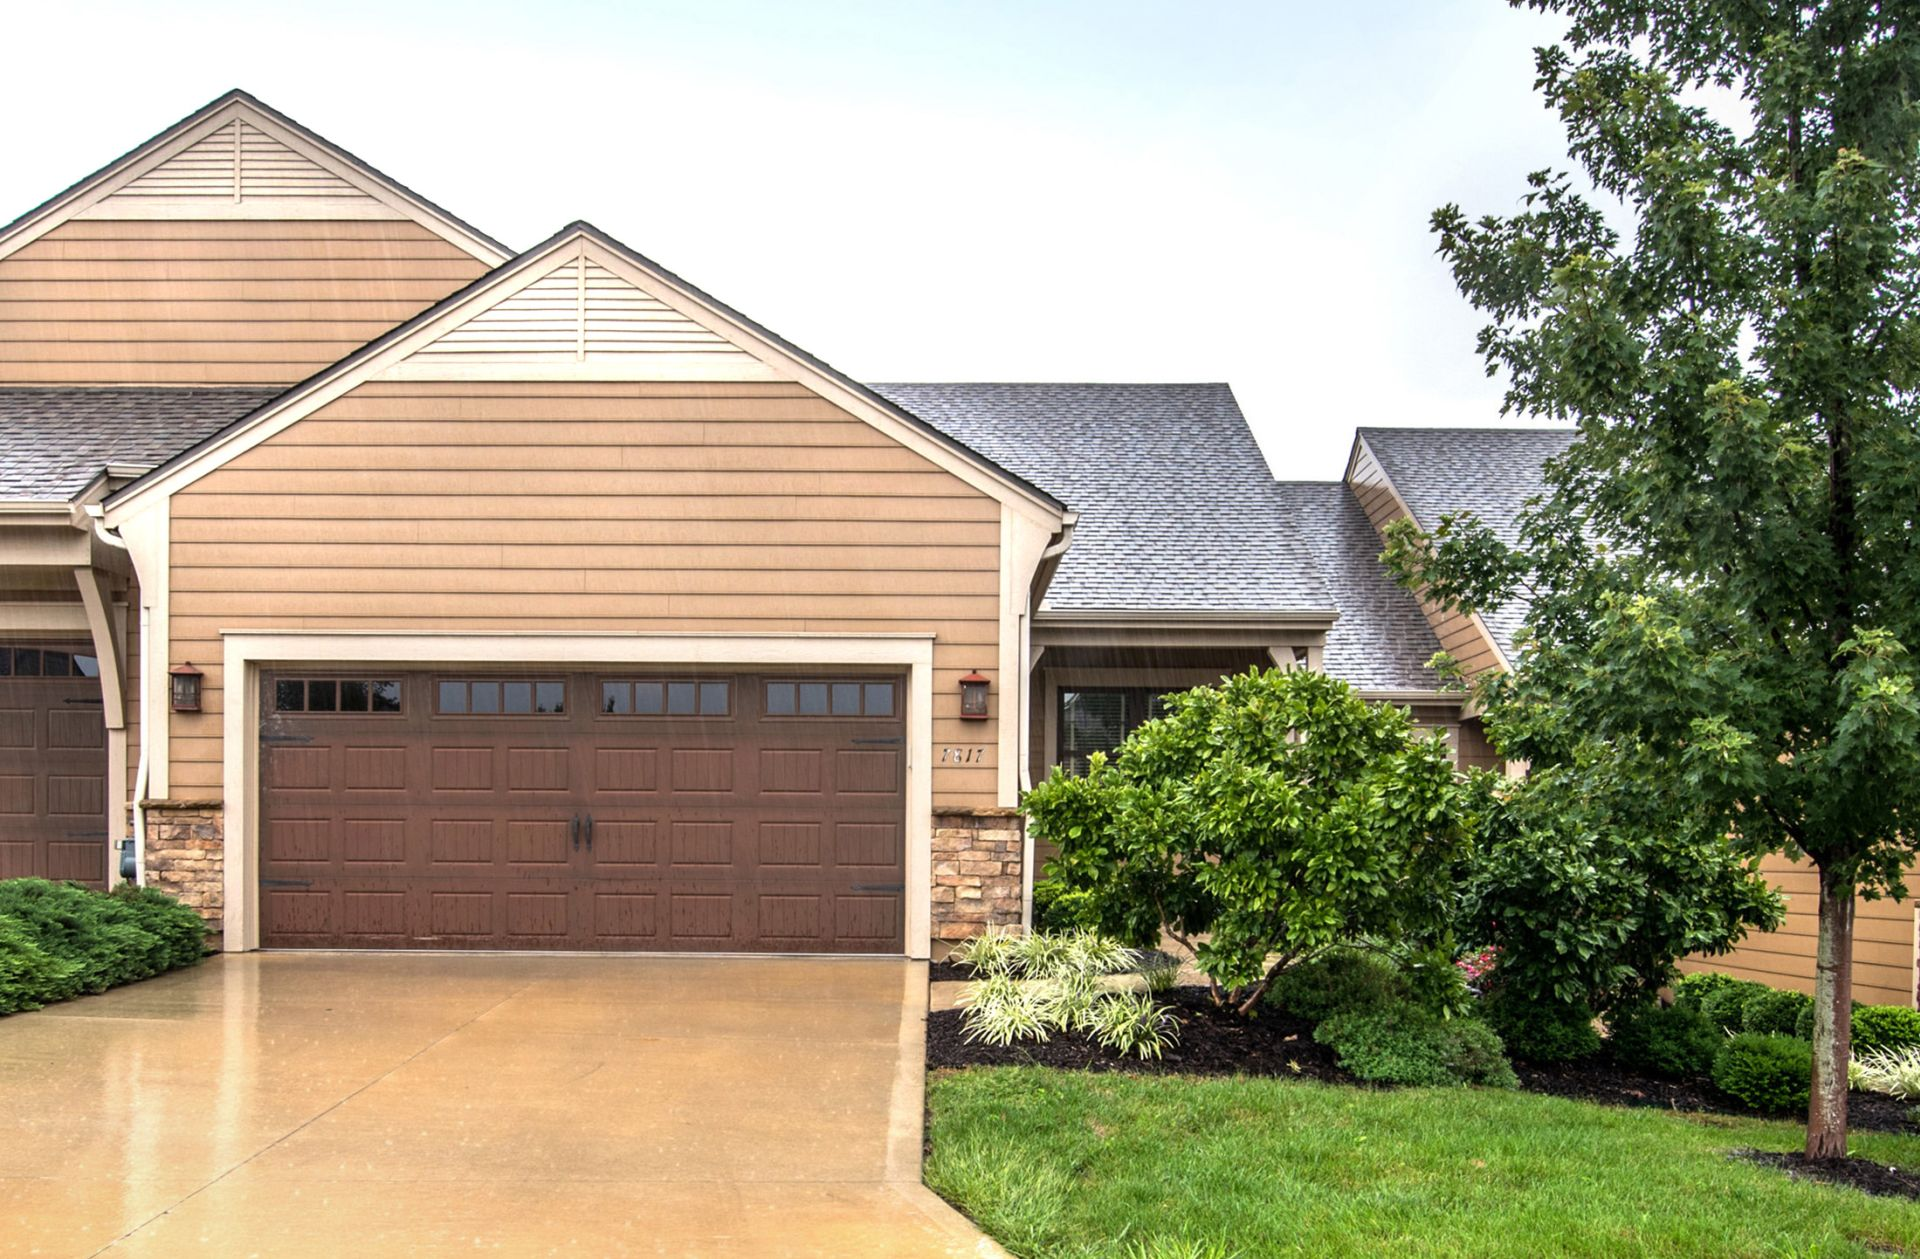 Overland Park OPEN HOUSE! Sat 10/6, 12pm-2pm!